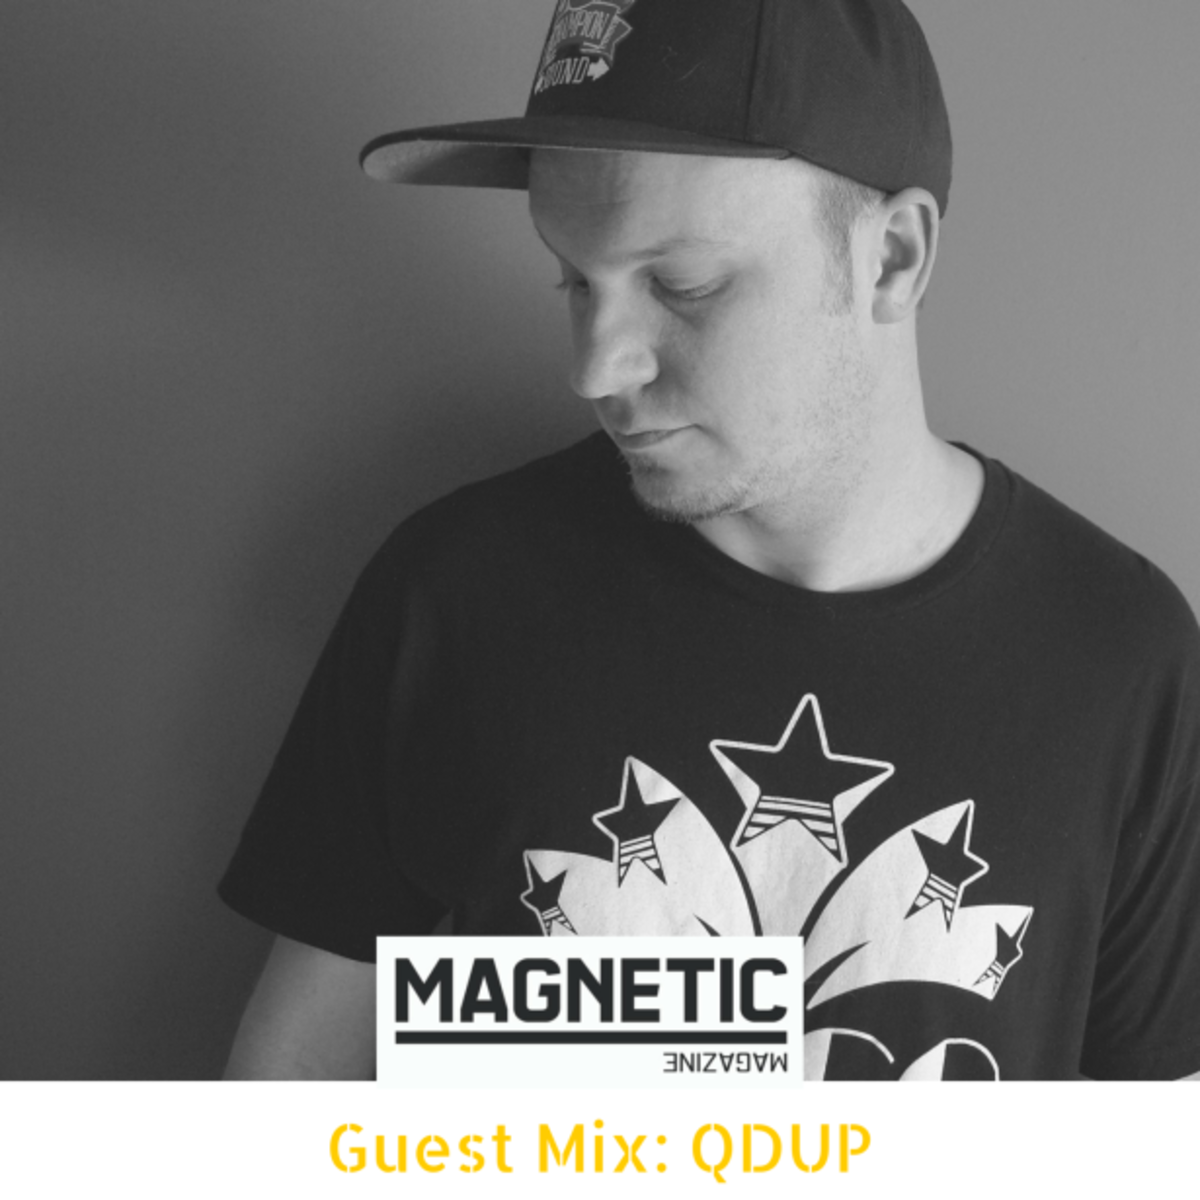 Magnetic Magazine's Guest Podcast and Interview: Qdup